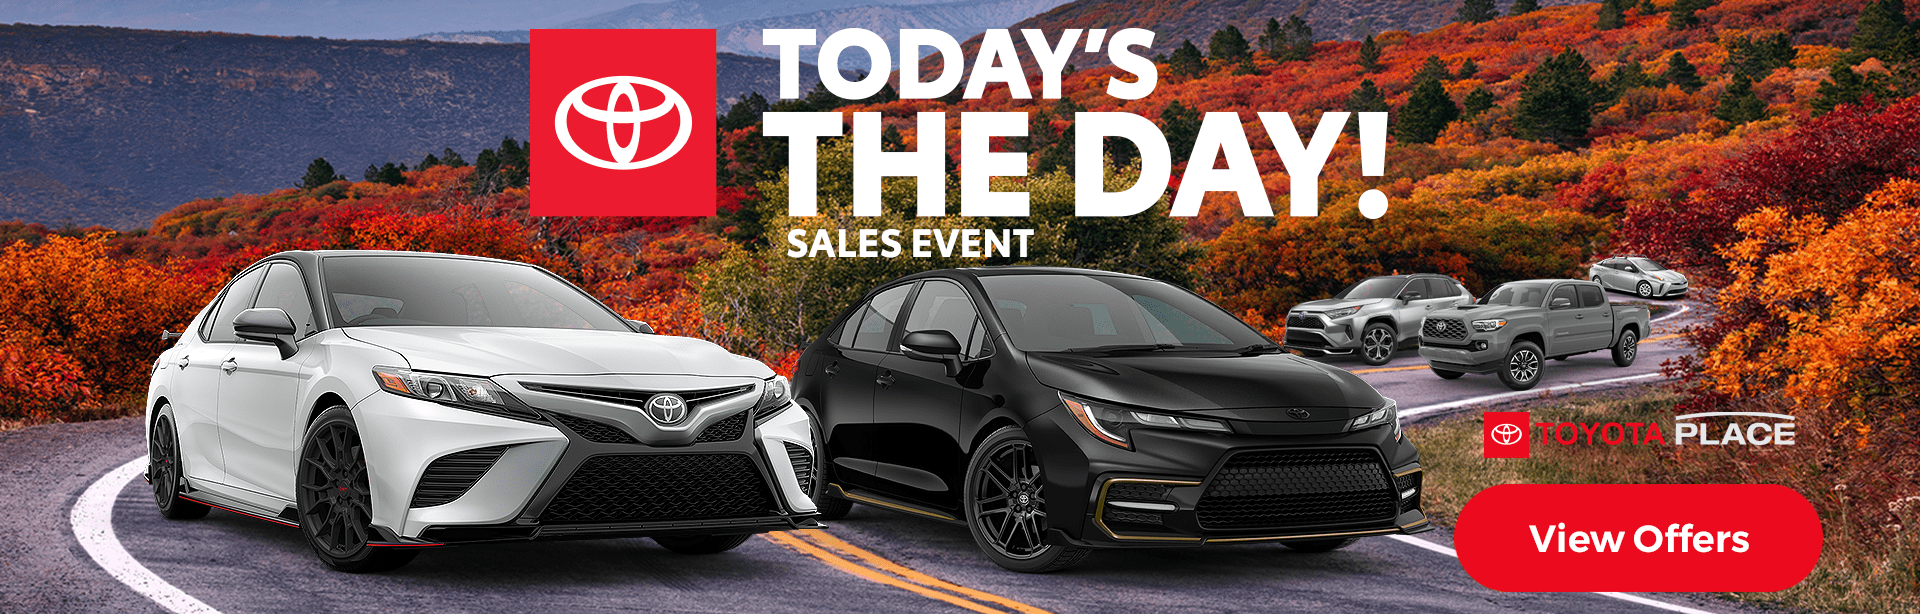 2020_October_Today_Sales_Event